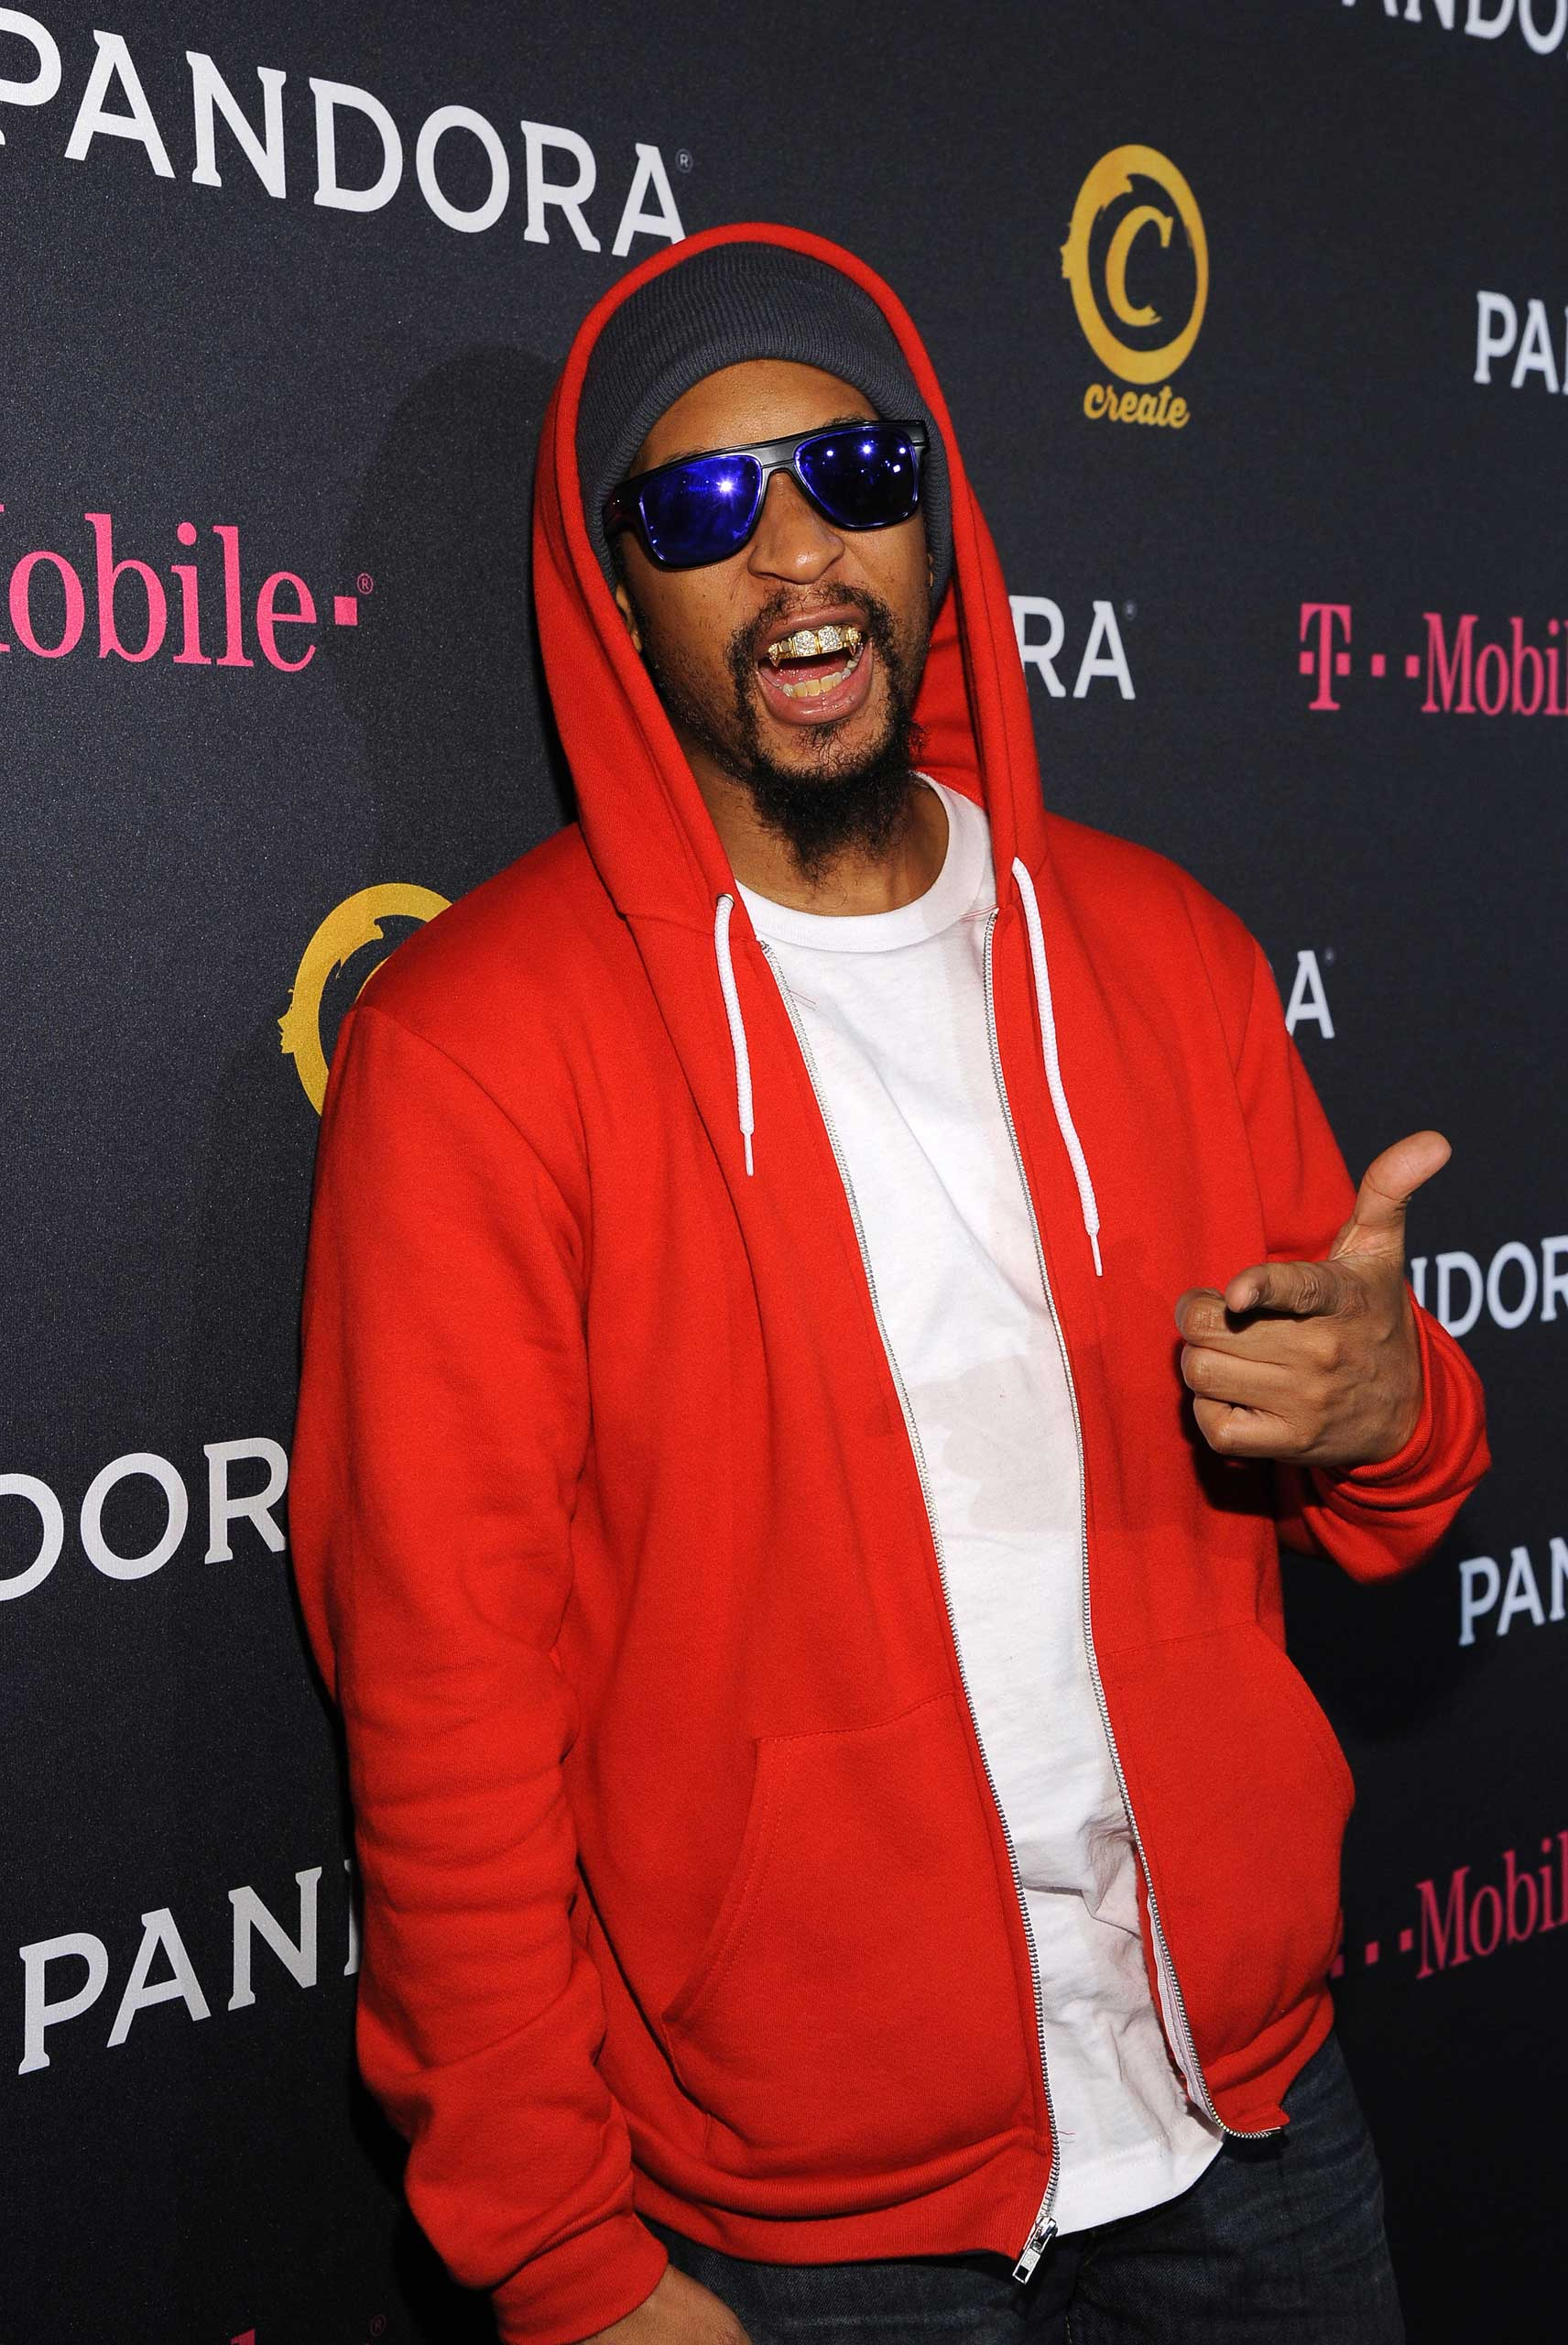 Rapper Lil Jon arrives for the PANDORA GRAMMY after party featuring Lil Jon in Hollywood, on Feb 8, 2015